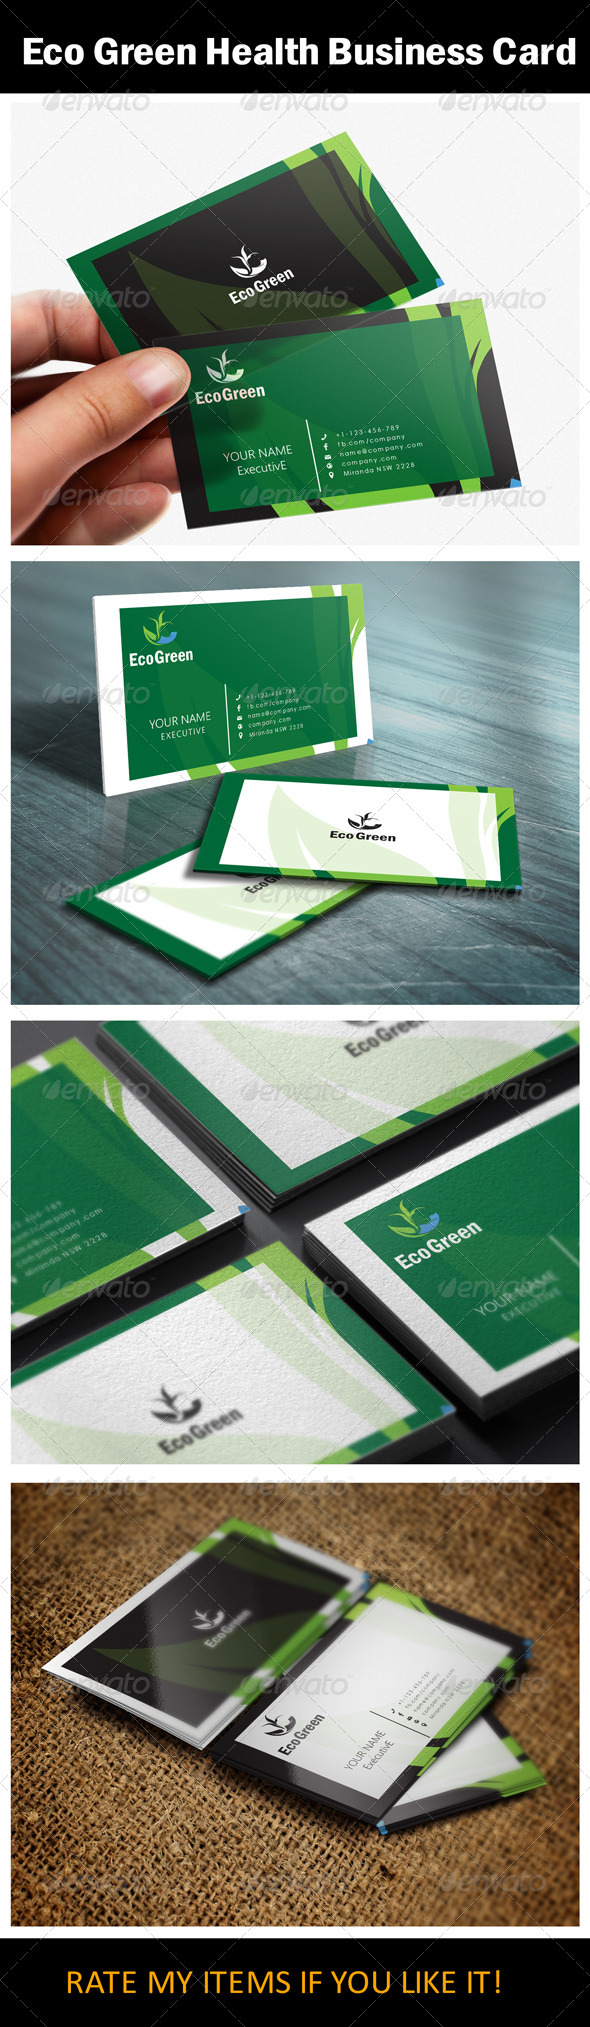 GraphicRiver Eco Green Health Business Card Design 5487282